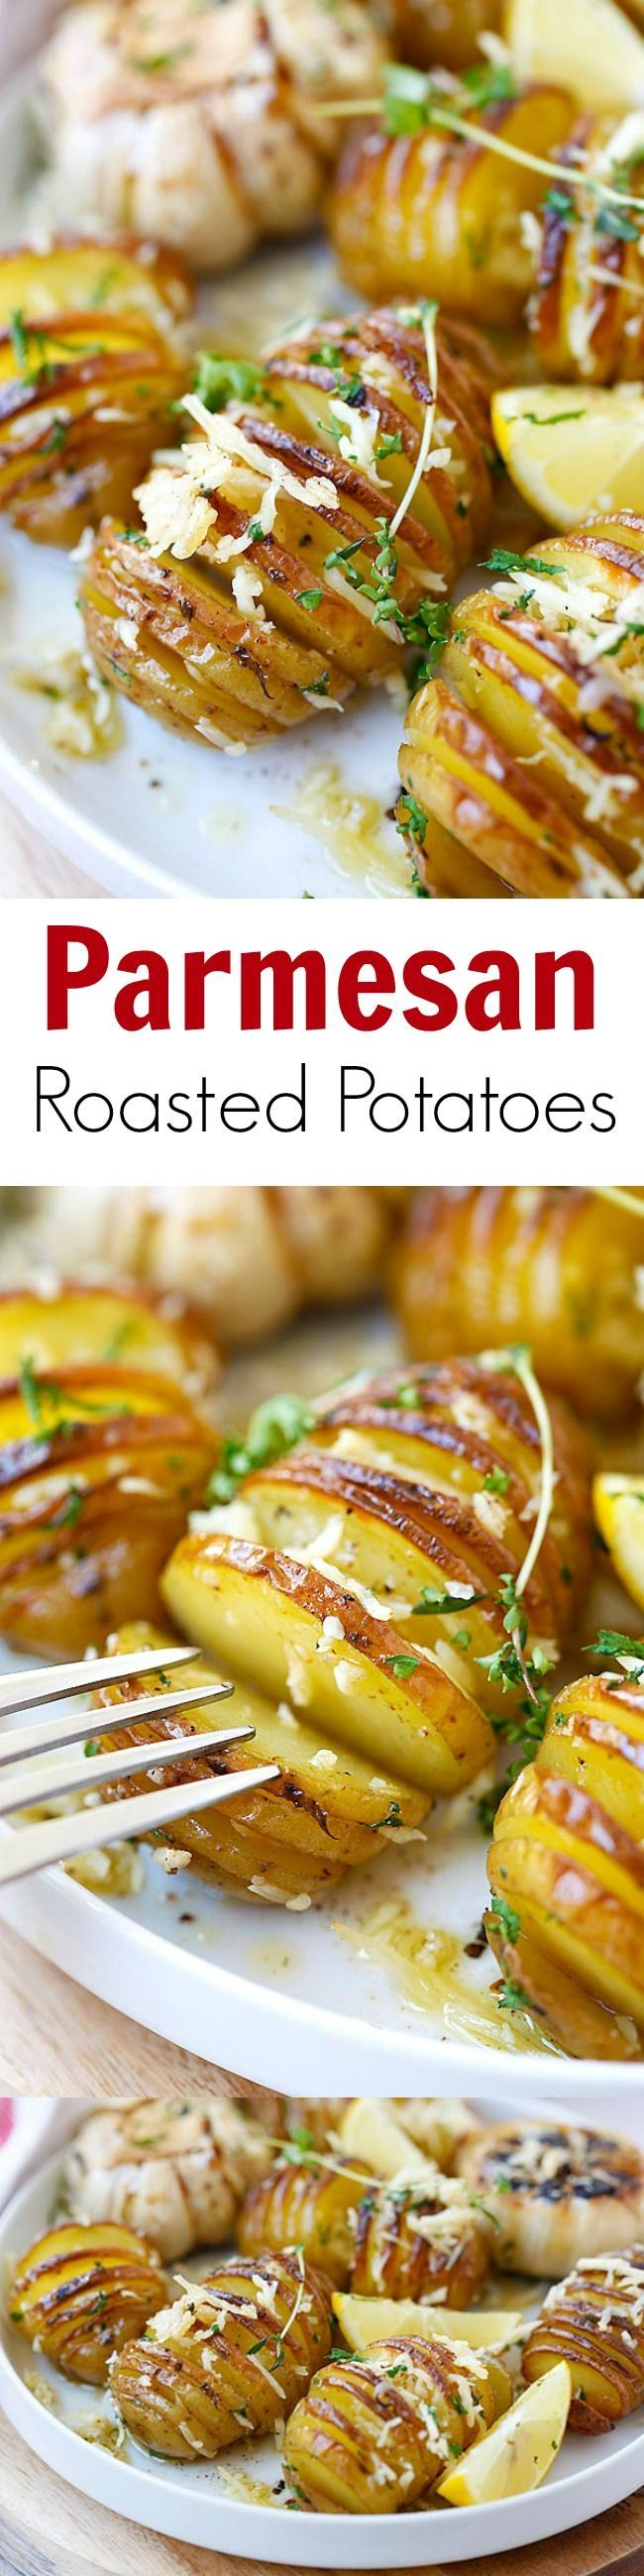 Parmesan Roasted Potatoes – the easiest and BEST roasted potatoes with Parmesan cheese, butter and herbs. SO good you'll want to make it every day!!   rasamalaysia.com